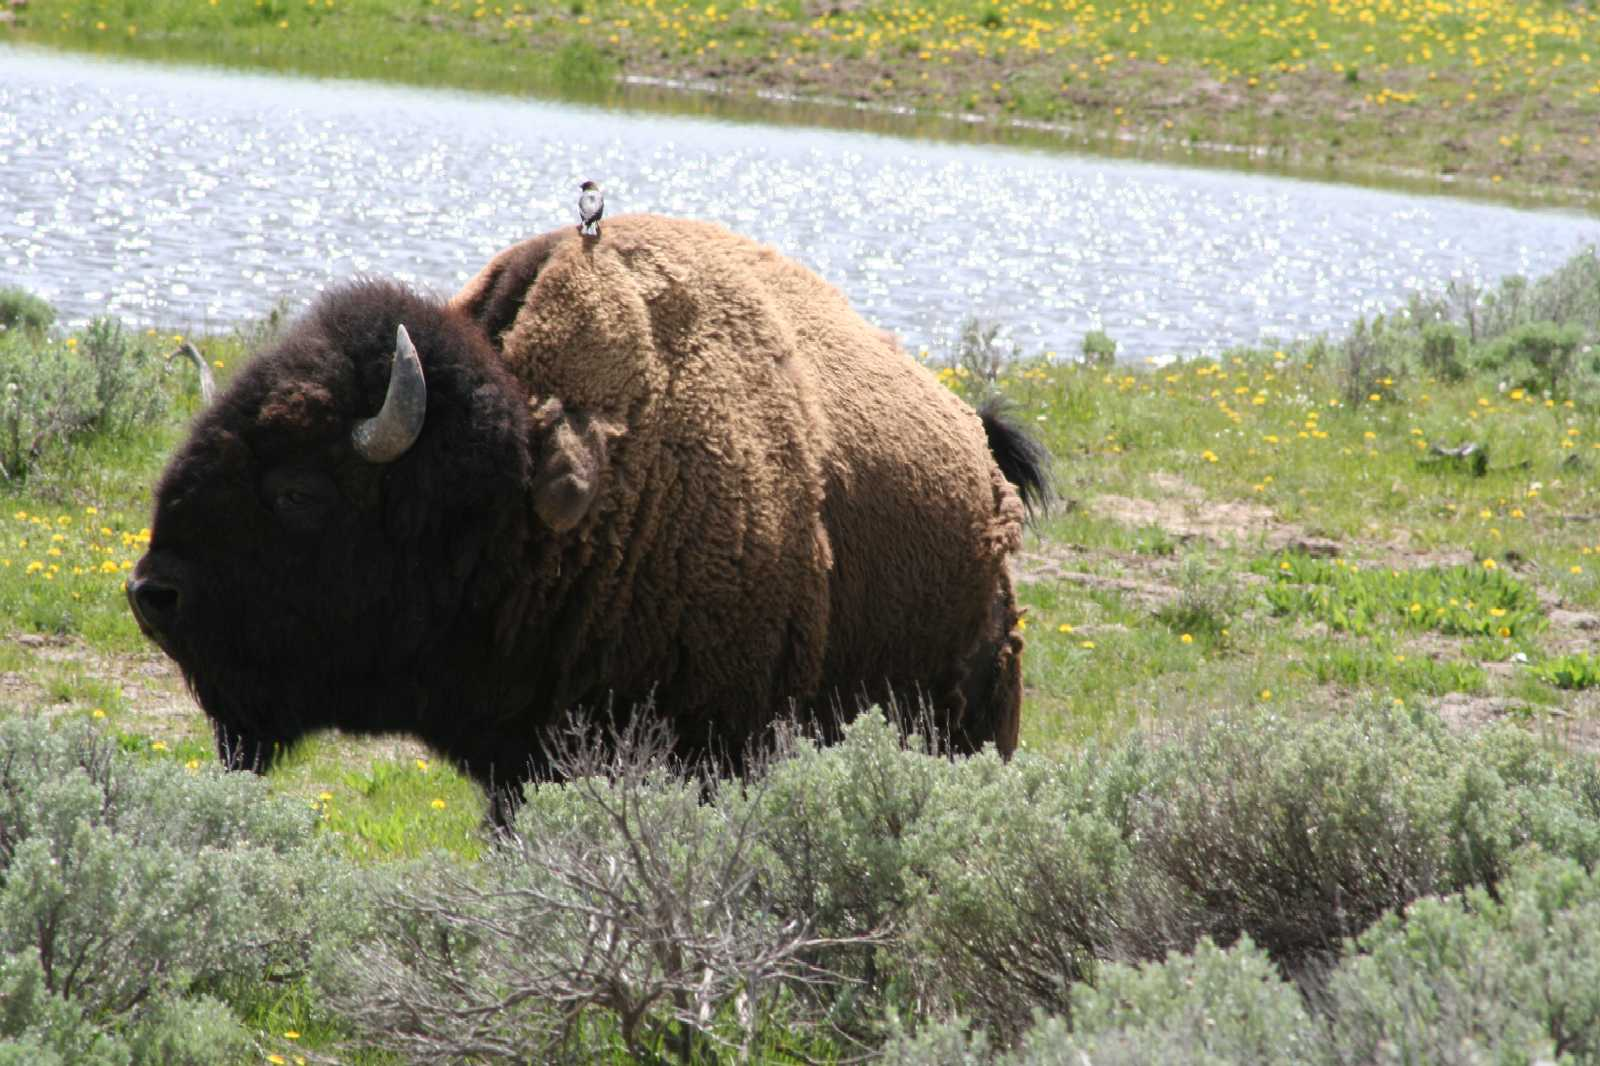 Click image for larger version  Name:Bison Bull Yellowstone National Park.jpg Views:116 Size:180.7 KB ID:71077